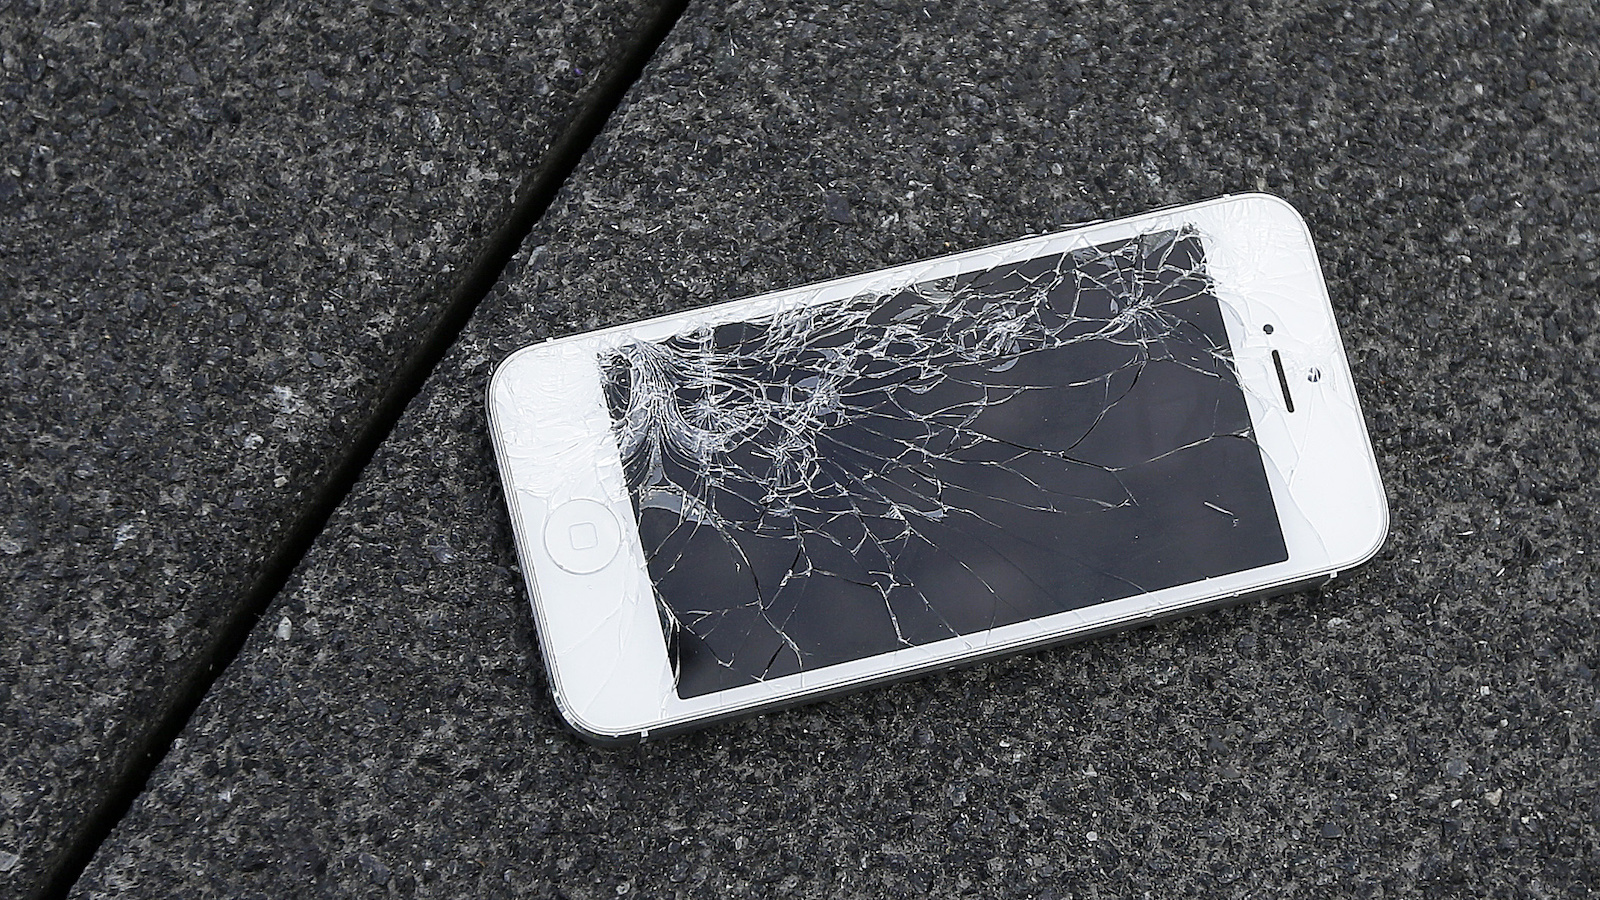 smashed iphone mobile phone screen